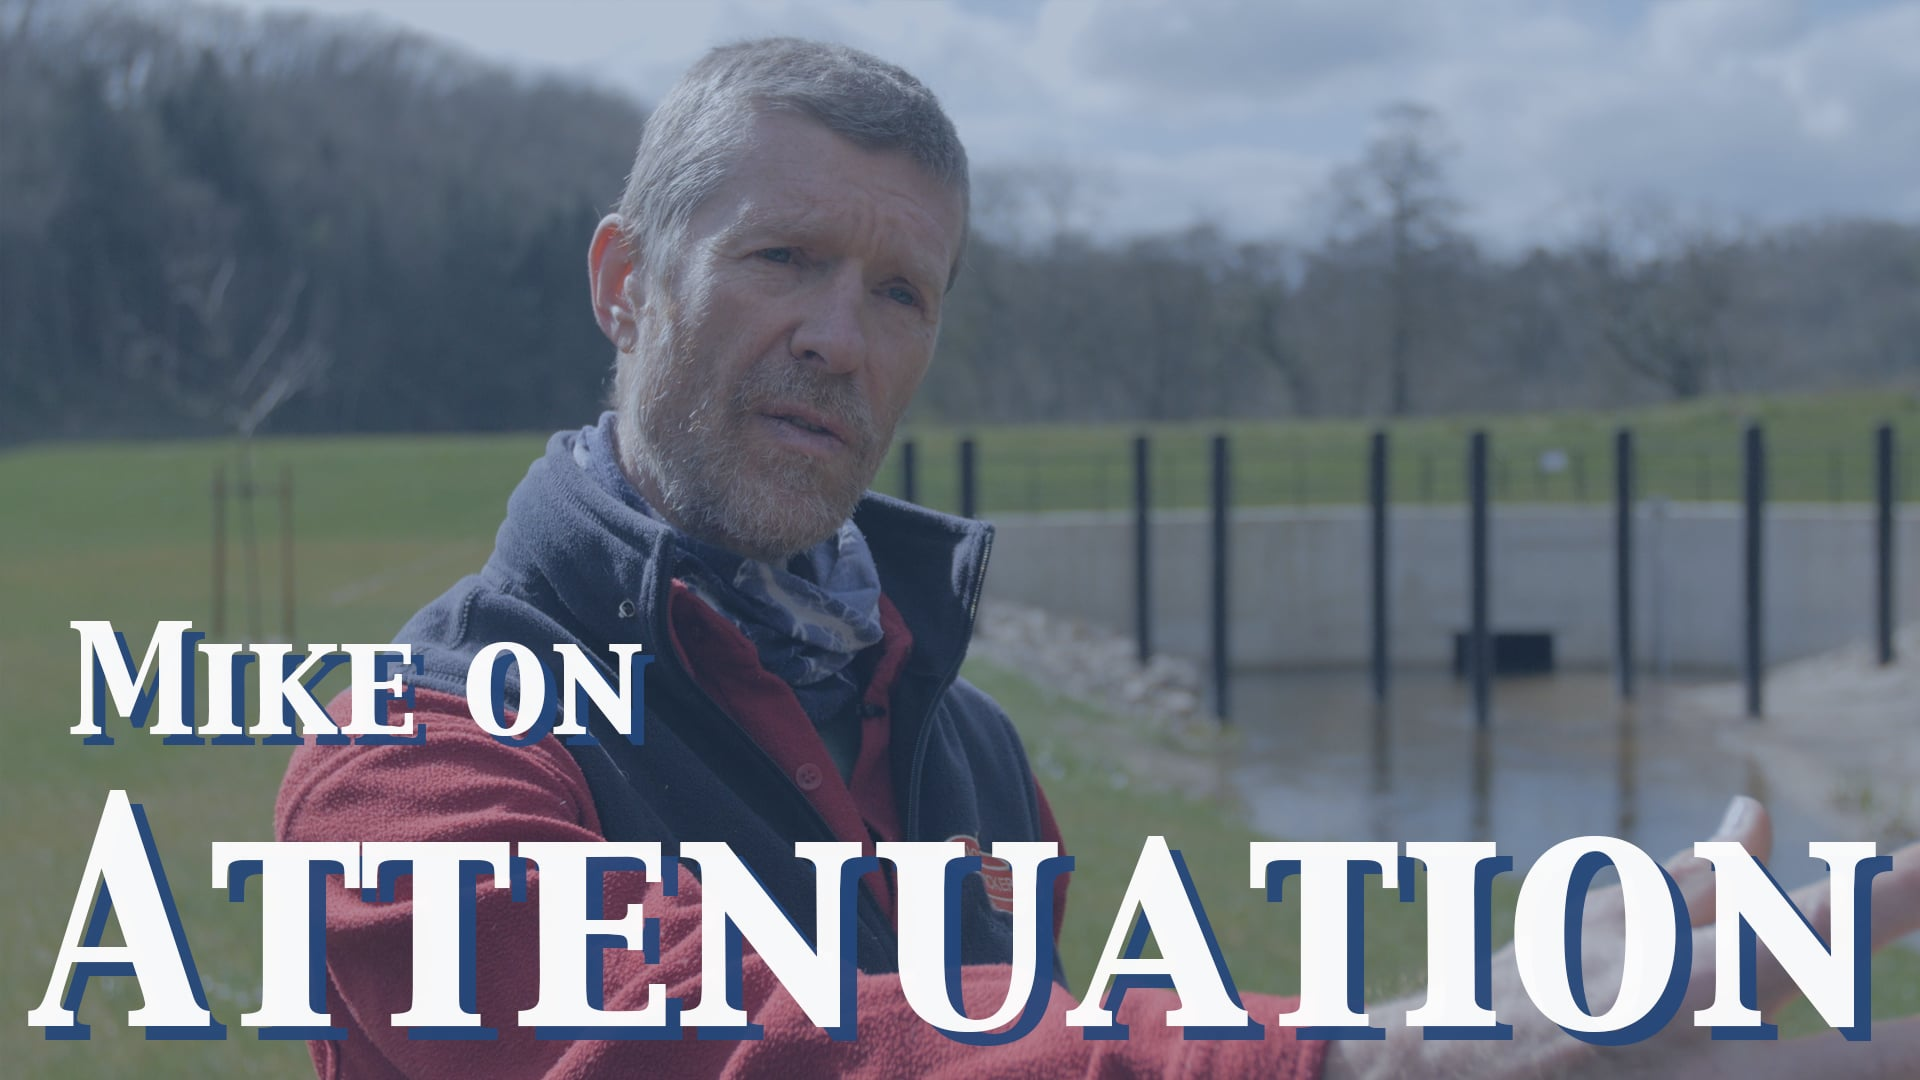 Mike on Attenuation